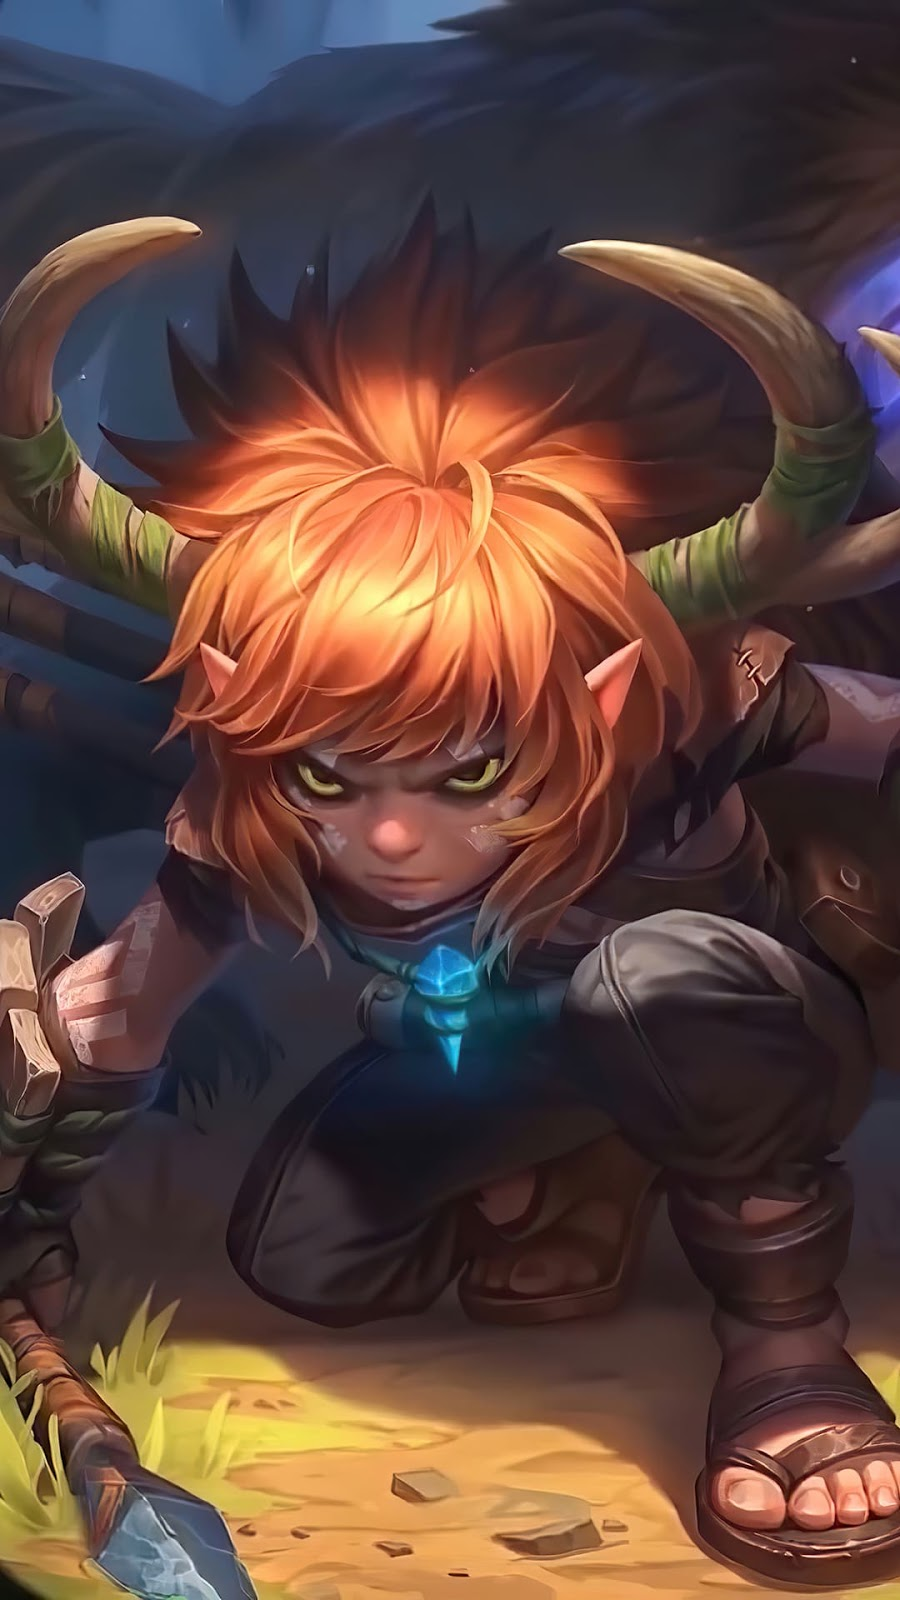 Wallpaper Popol and Kupa Hunting Pals Skin Mobile Legends HD for Android and iOS